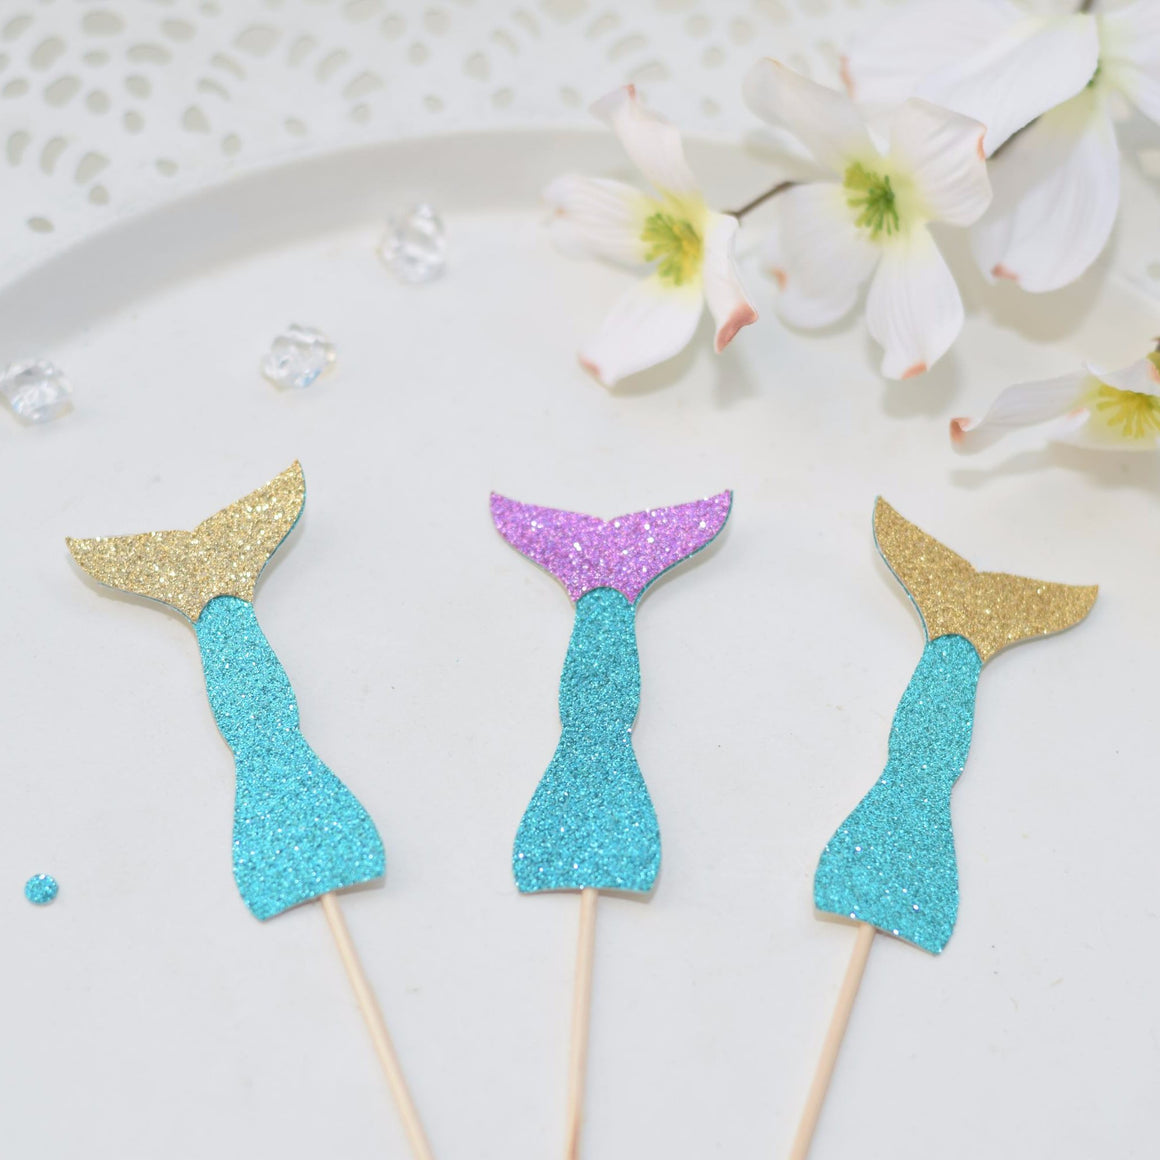 sparkle glitter teal, gold and purple mermaid tail cupcake toppers